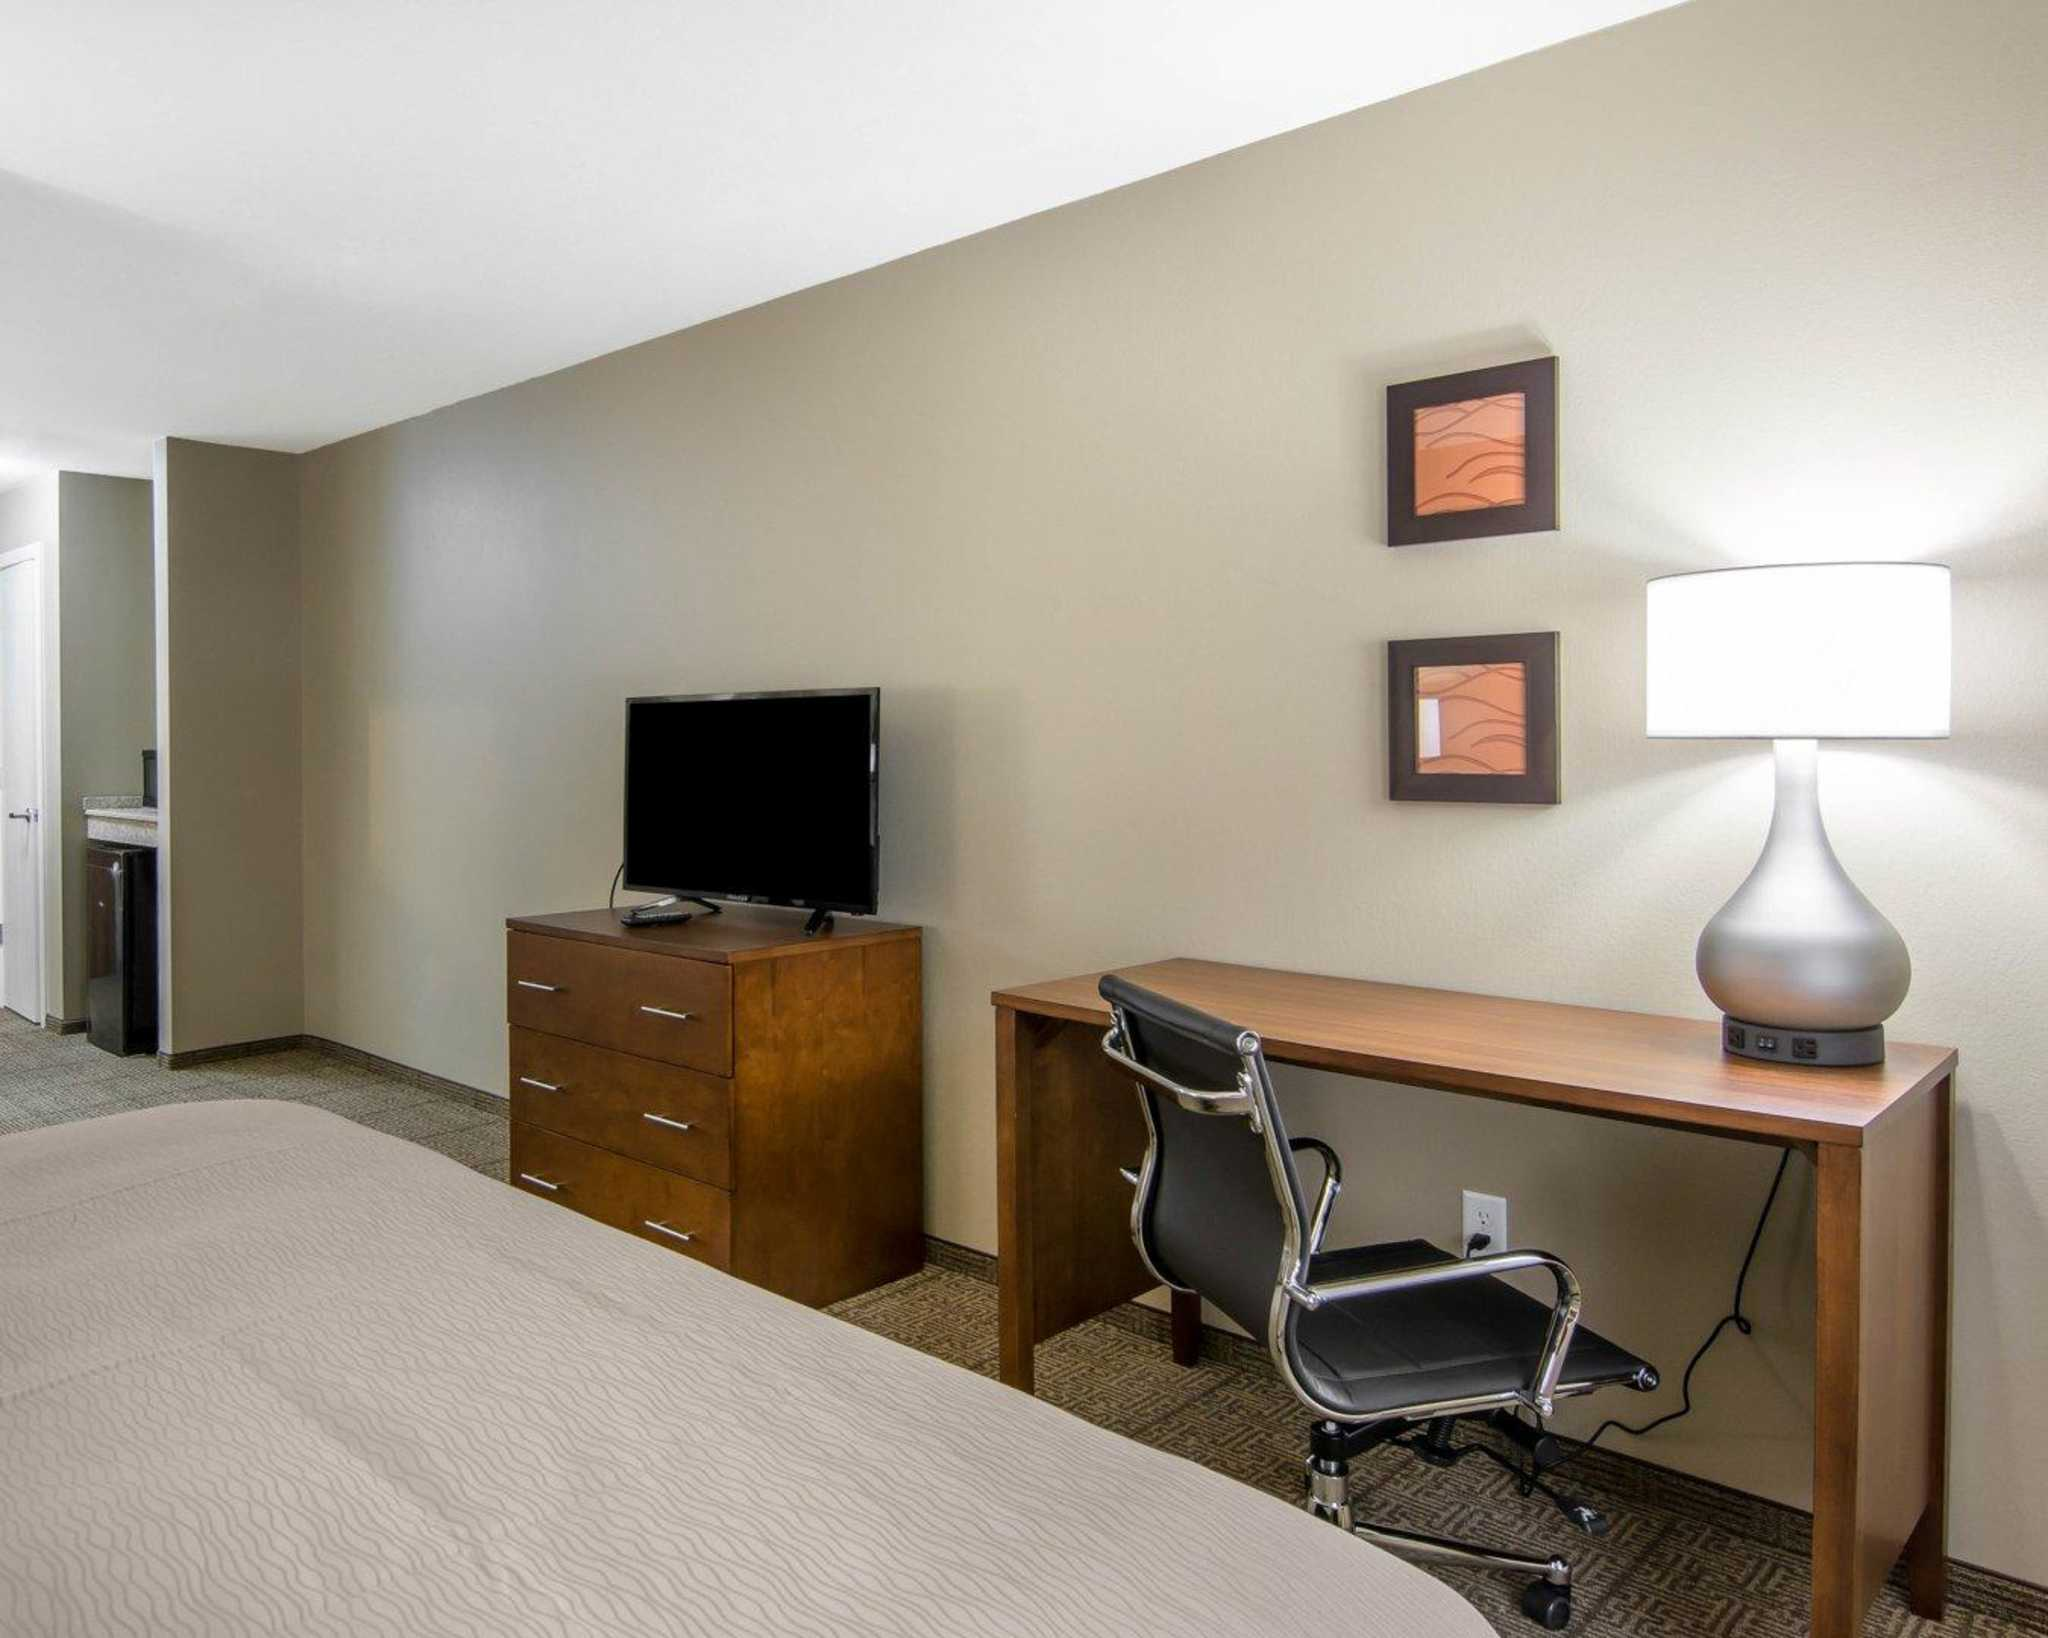 Comfort Inn South Chesterfield - Colonial Heights image 19